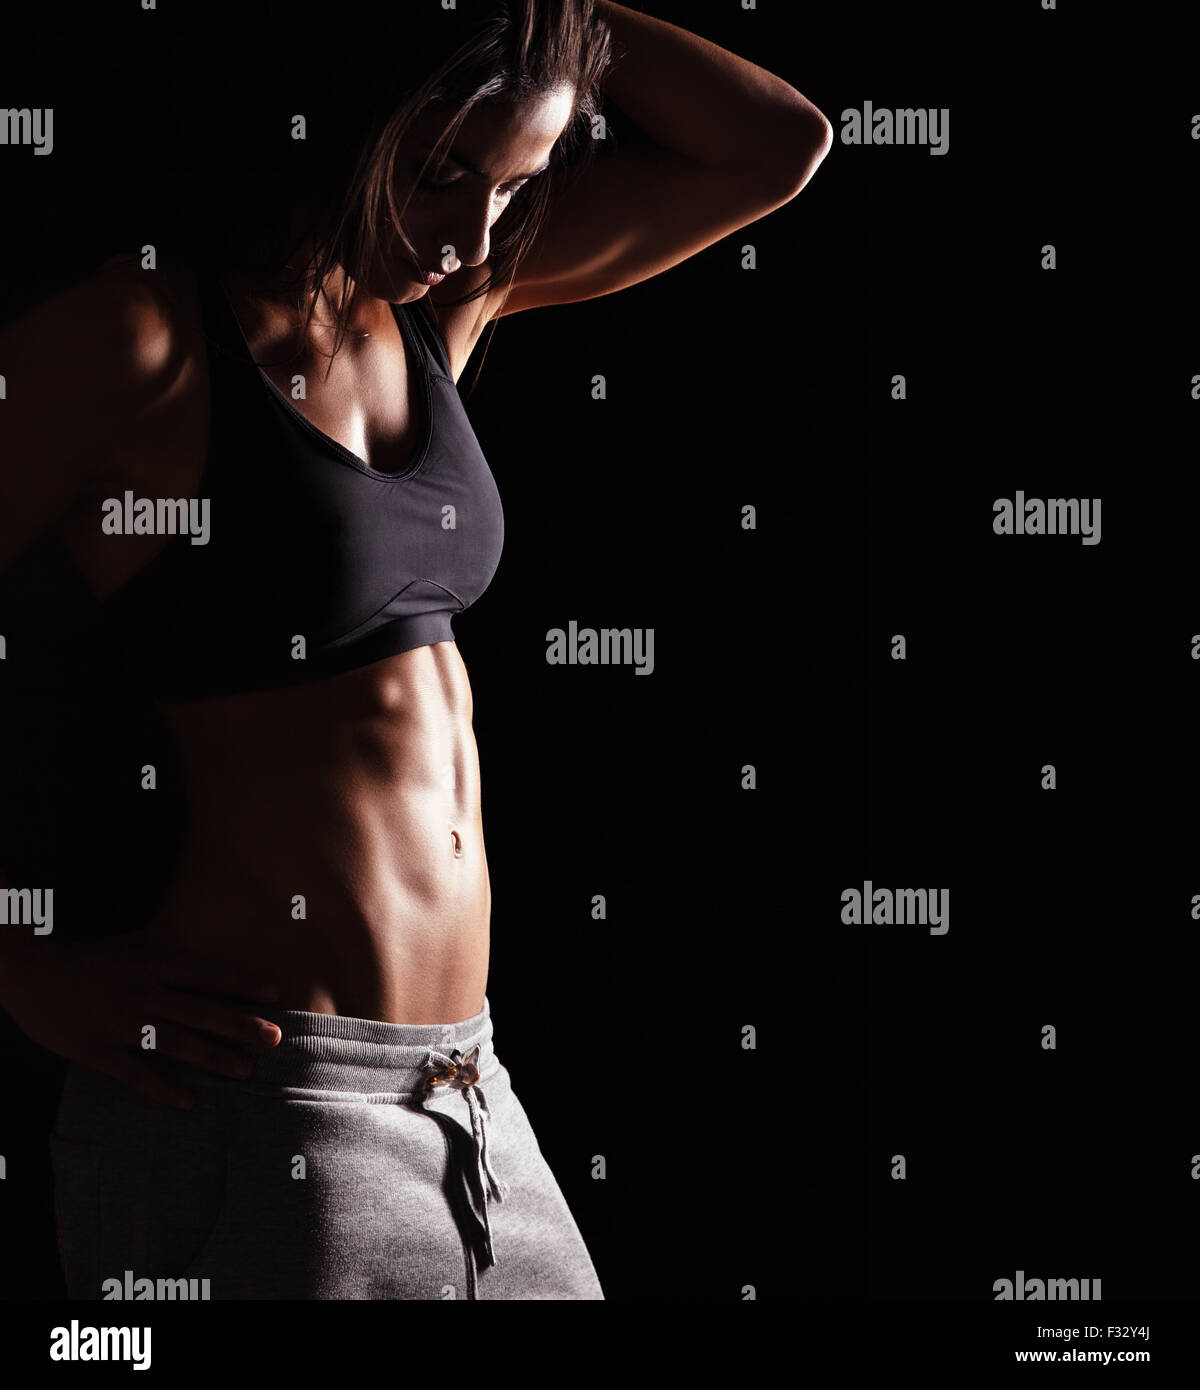 Image of fitness woman in sports clothing looking down young female model with muscular body horizontal studio shot with copy